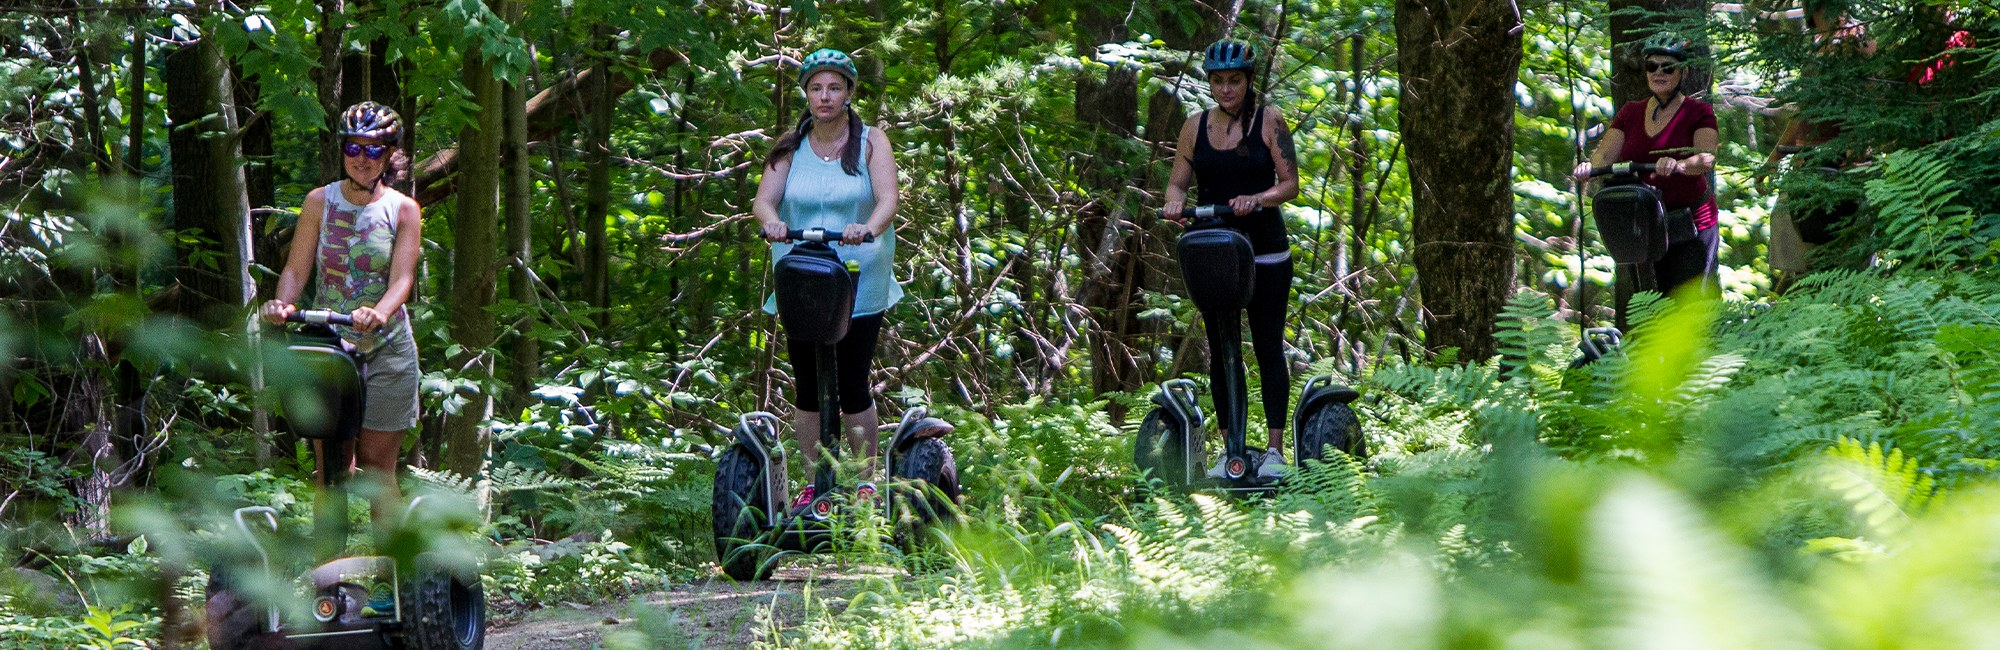 Ladies driving Segways through the woods